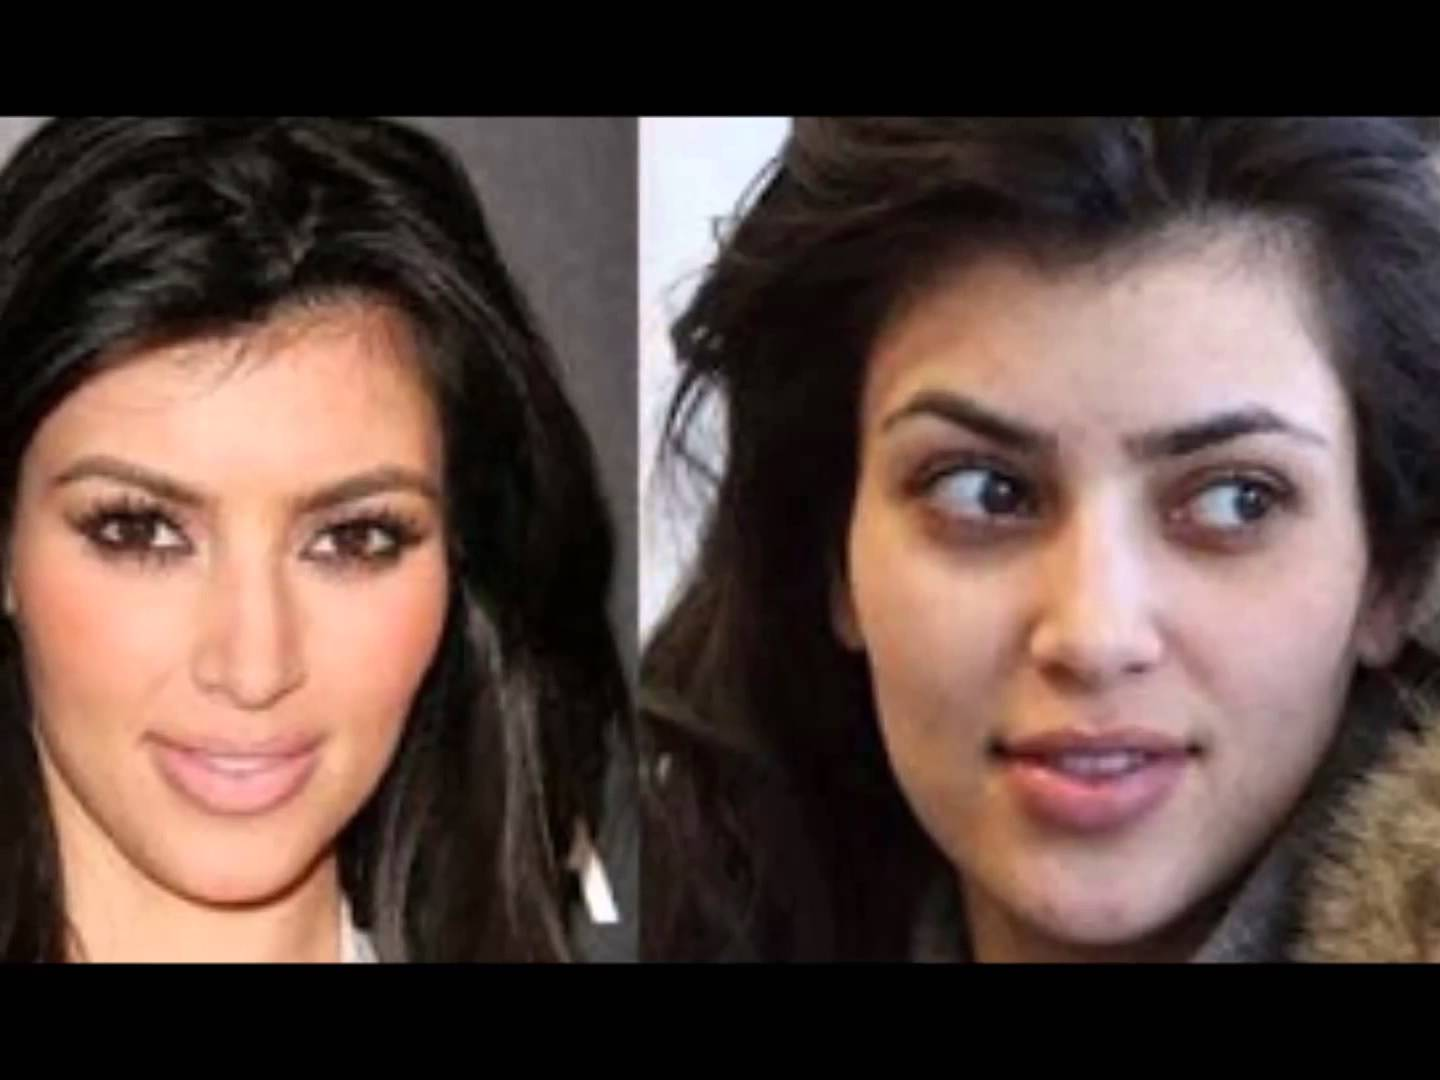 5 hollywood actress horrible face overdoing plastic surgery